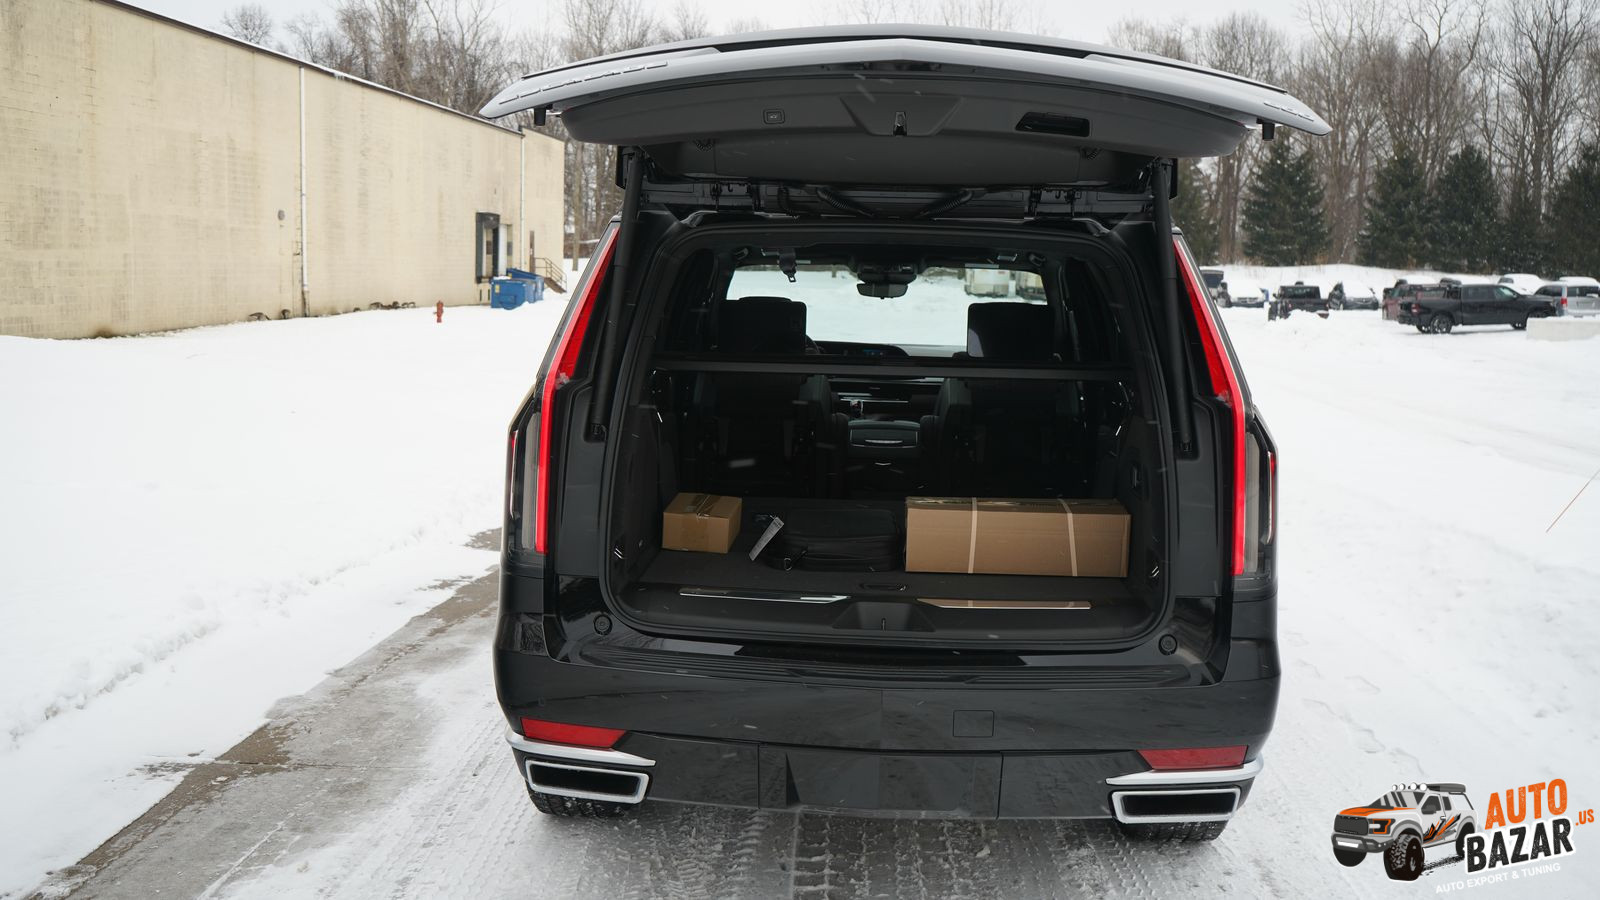 /storage/inventories/1103/2021 Cadillac Escalade 1103 (15).JPG